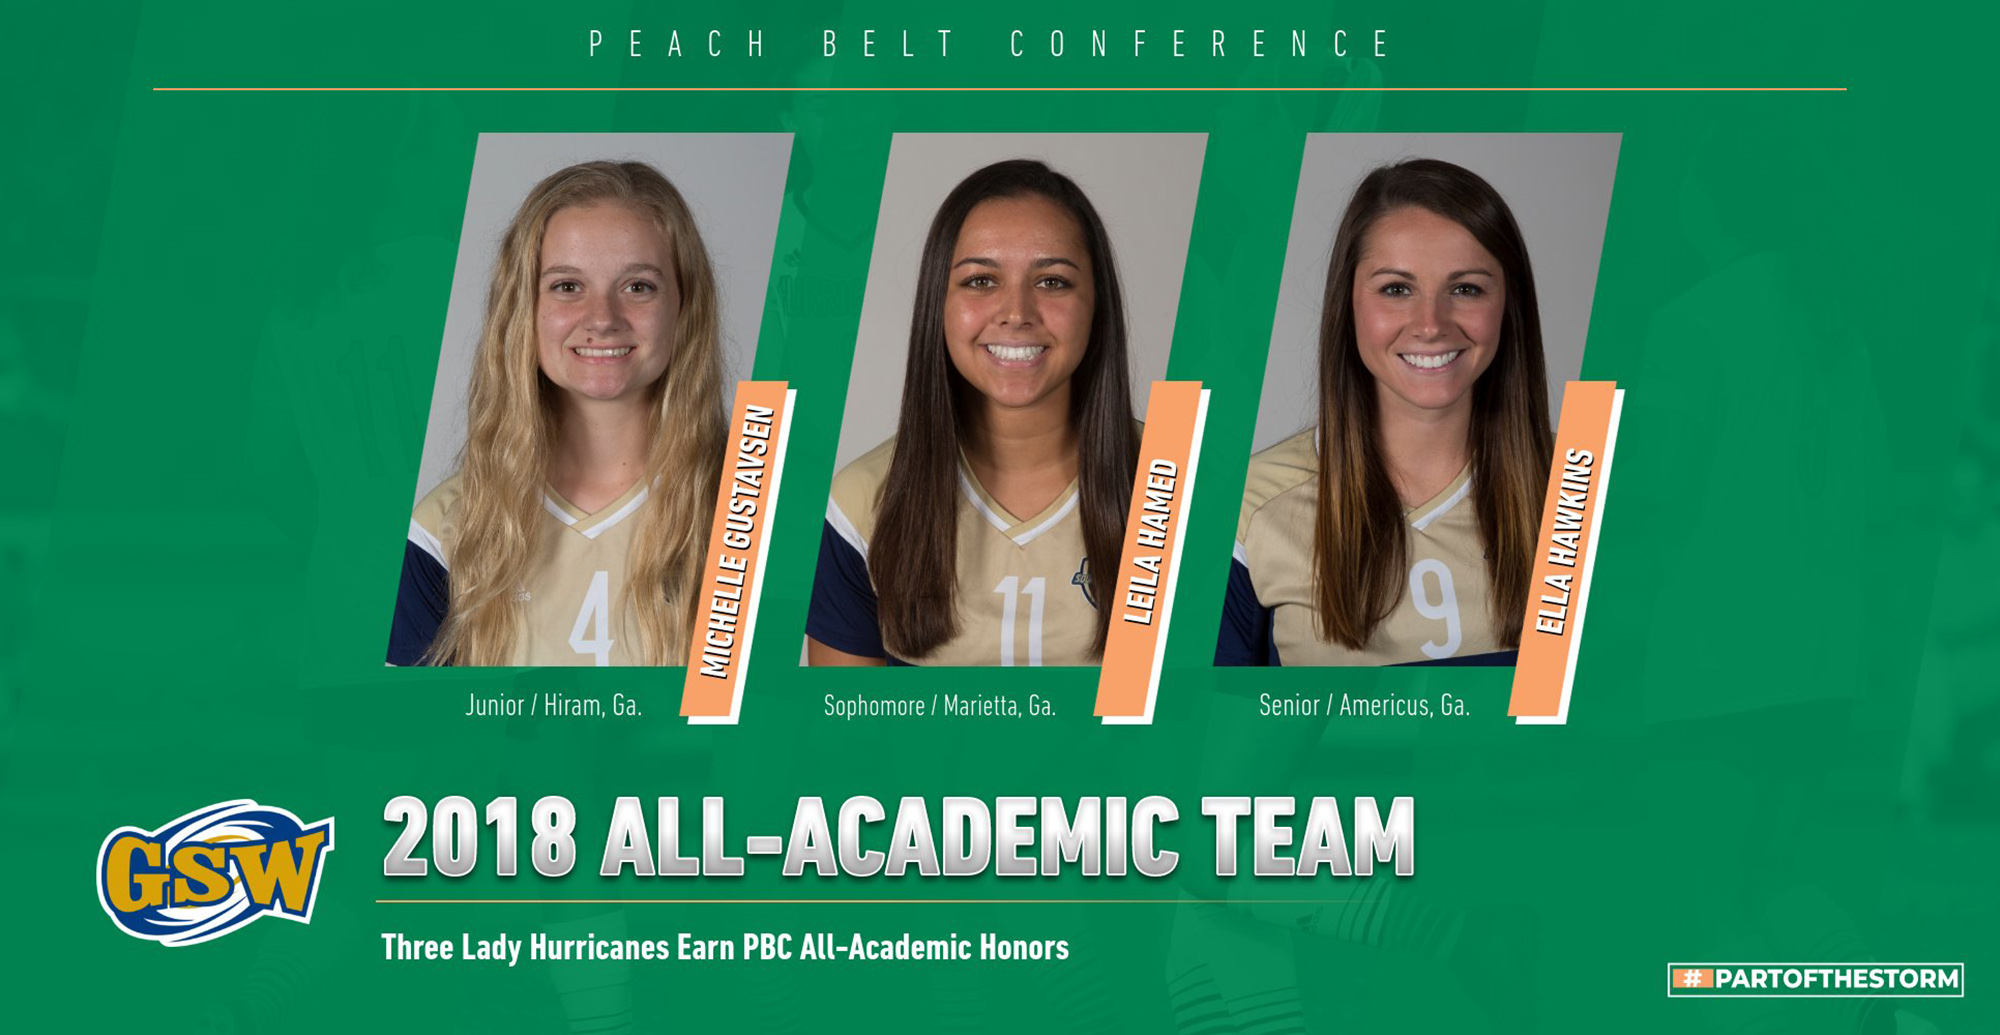 Trio of Lady Hurricanes Named 2018 PBC All-Academic